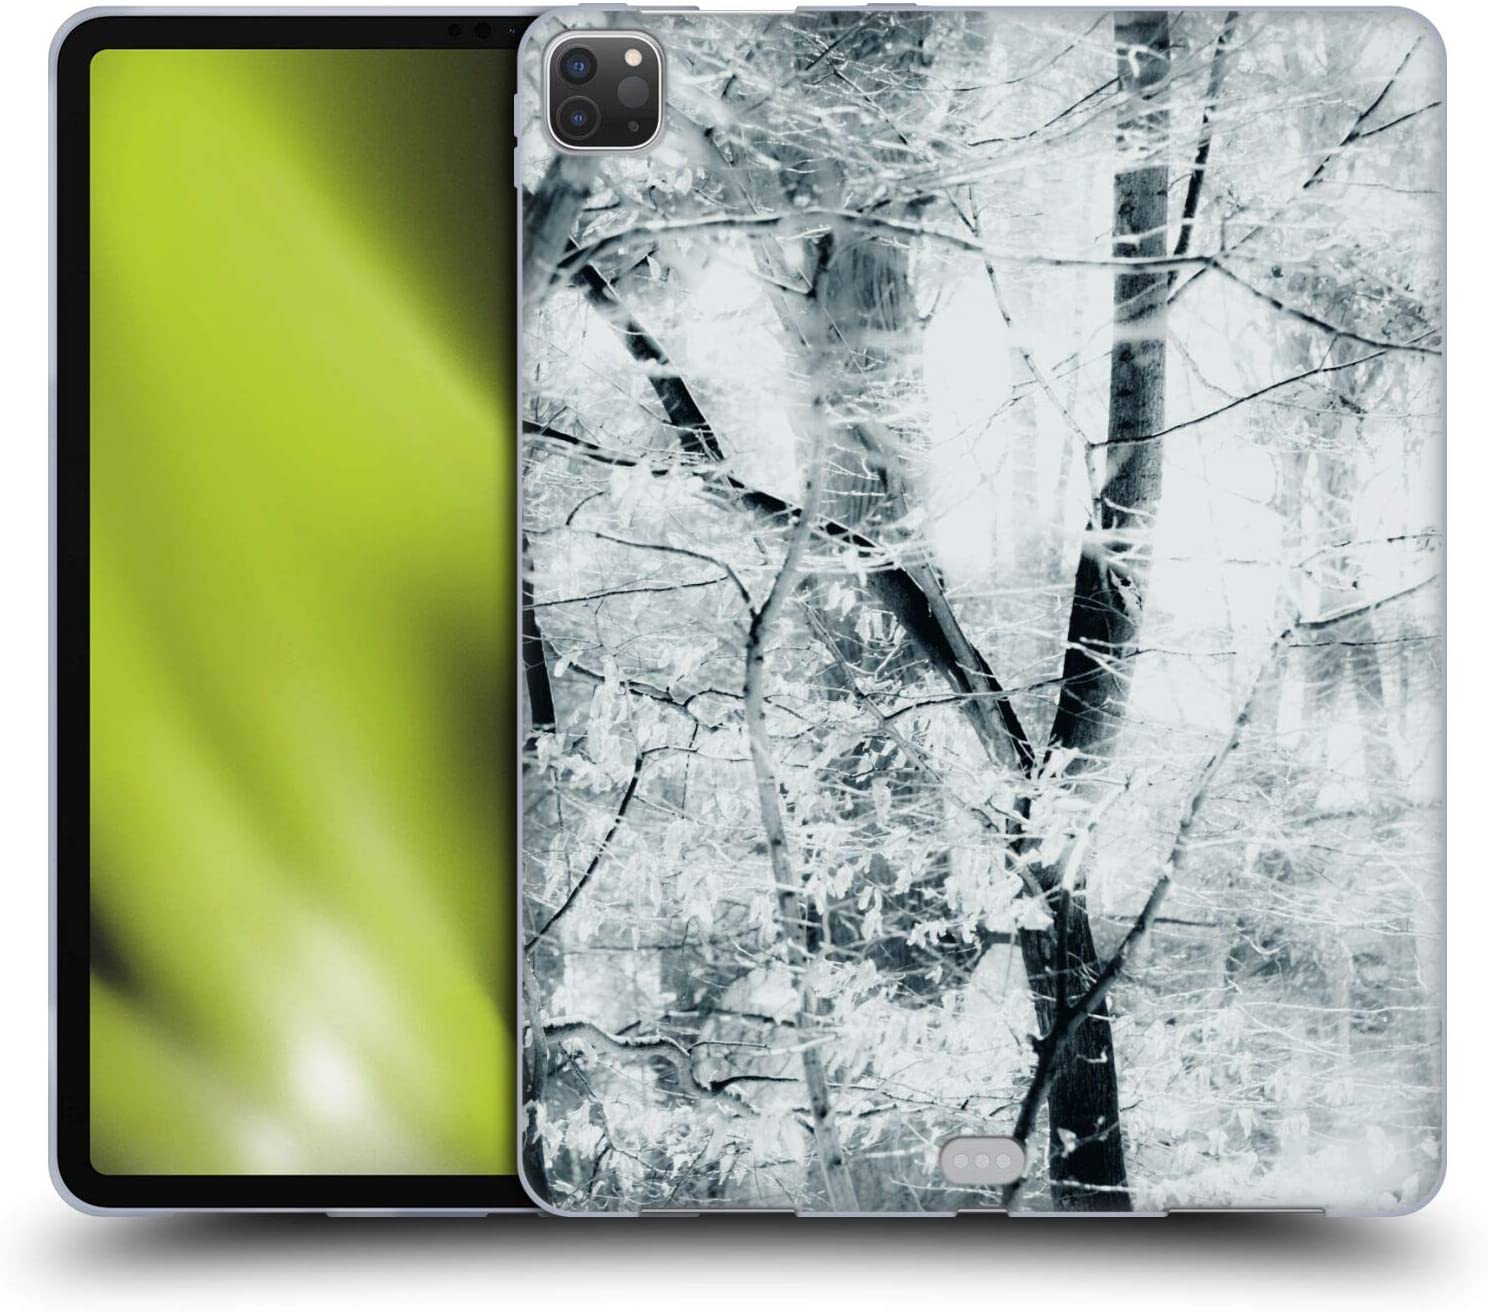 Head Case Designs Officially Licensed Dorit Fuhg Tree Breeze in The Forest Soft Gel Case Compatible with Apple iPad Pro 12.9 (2020)